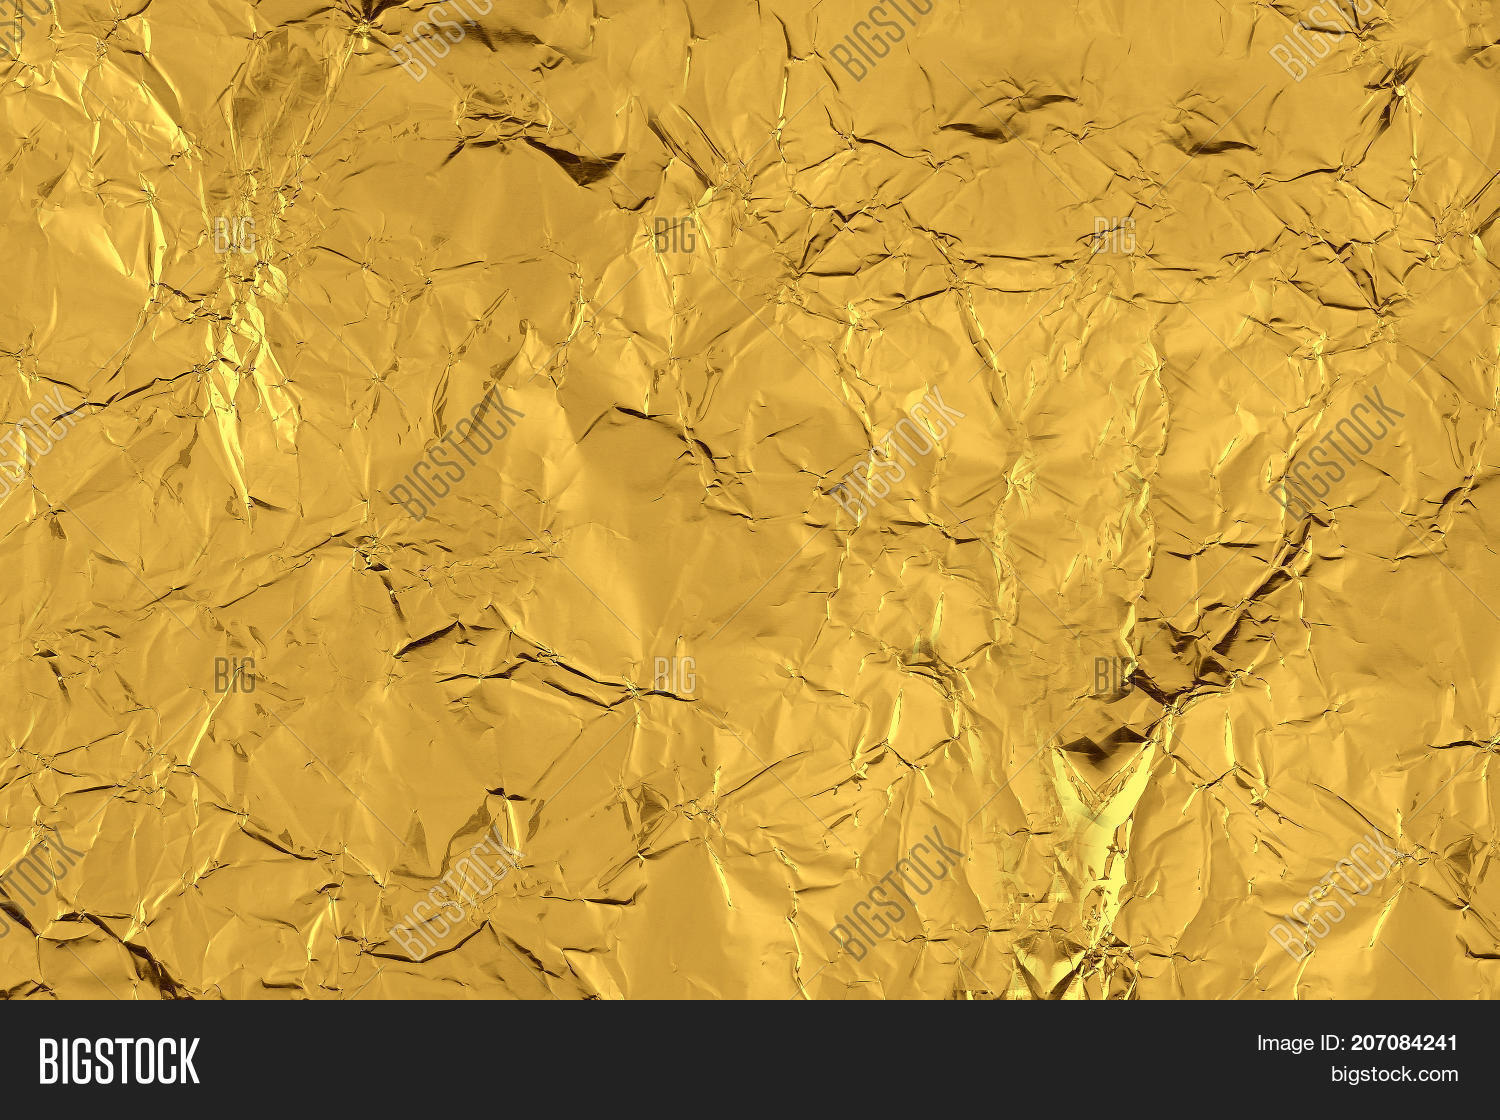 golden foil texture crumpled gold foil close up texture